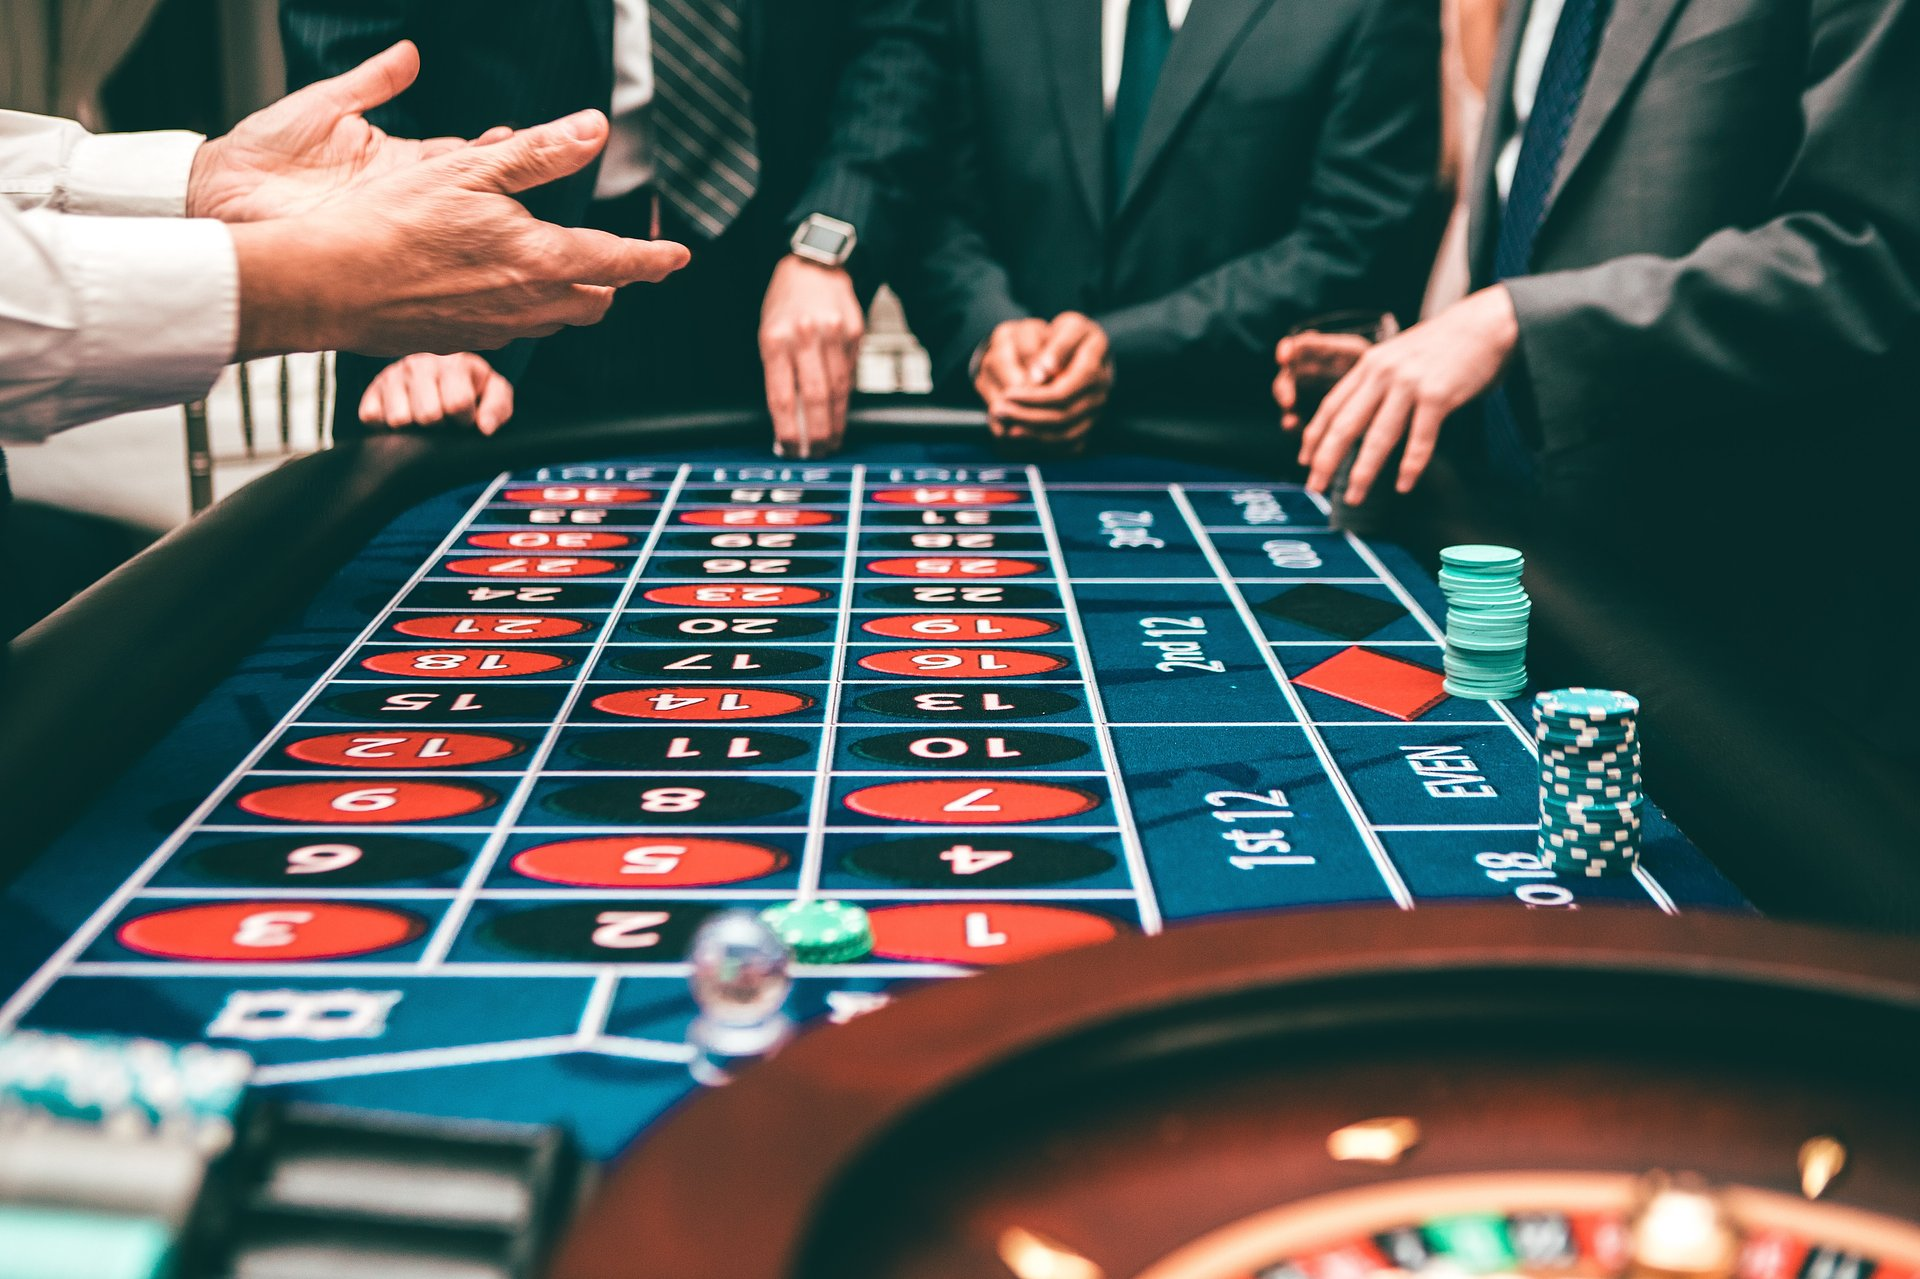 Casinos Can Incorporate Digital Signage, Short-form Content